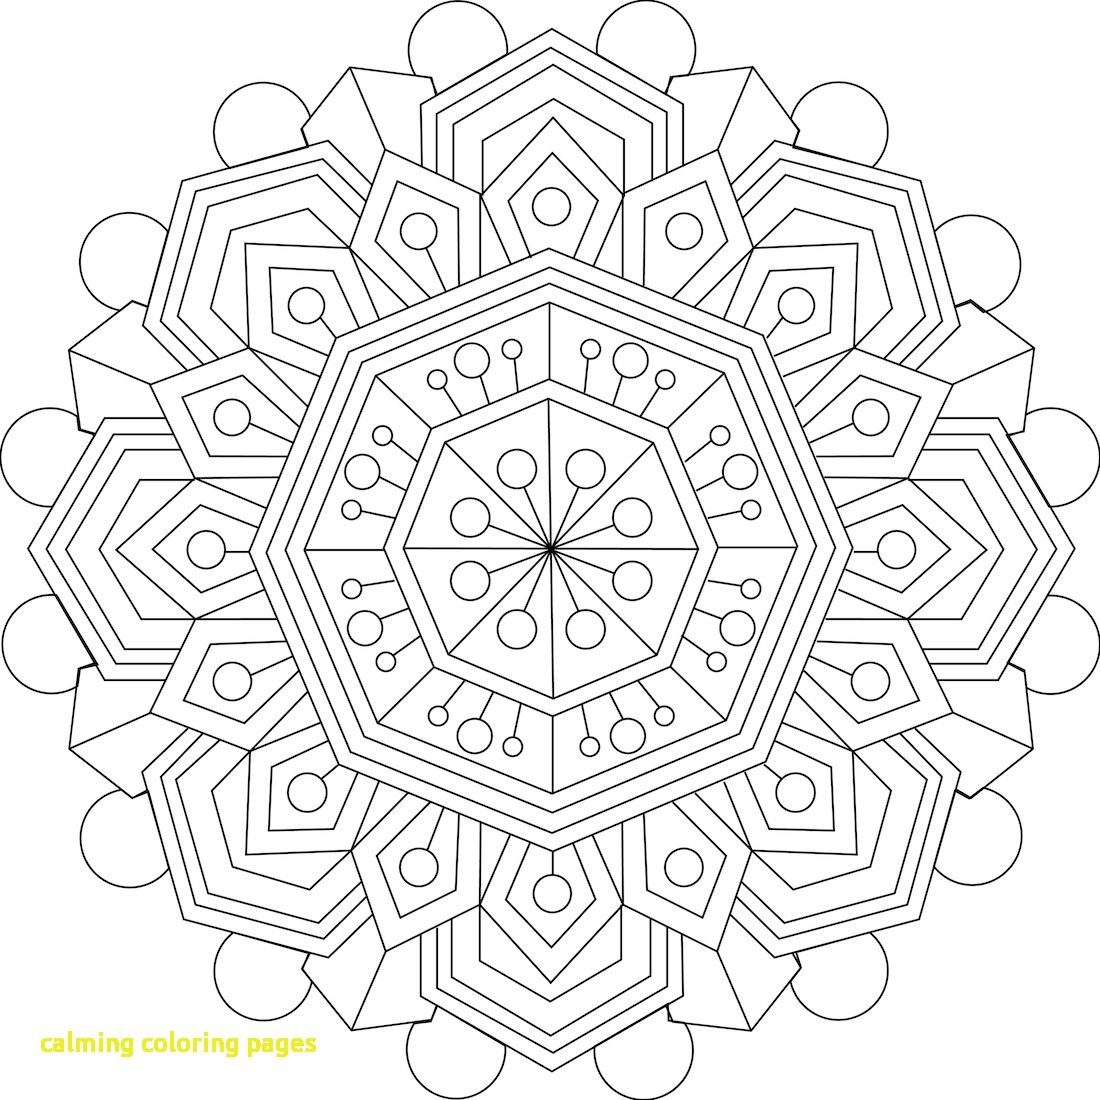 1100x1100 Calming Coloring Pages With Free Printable Coloring Pages